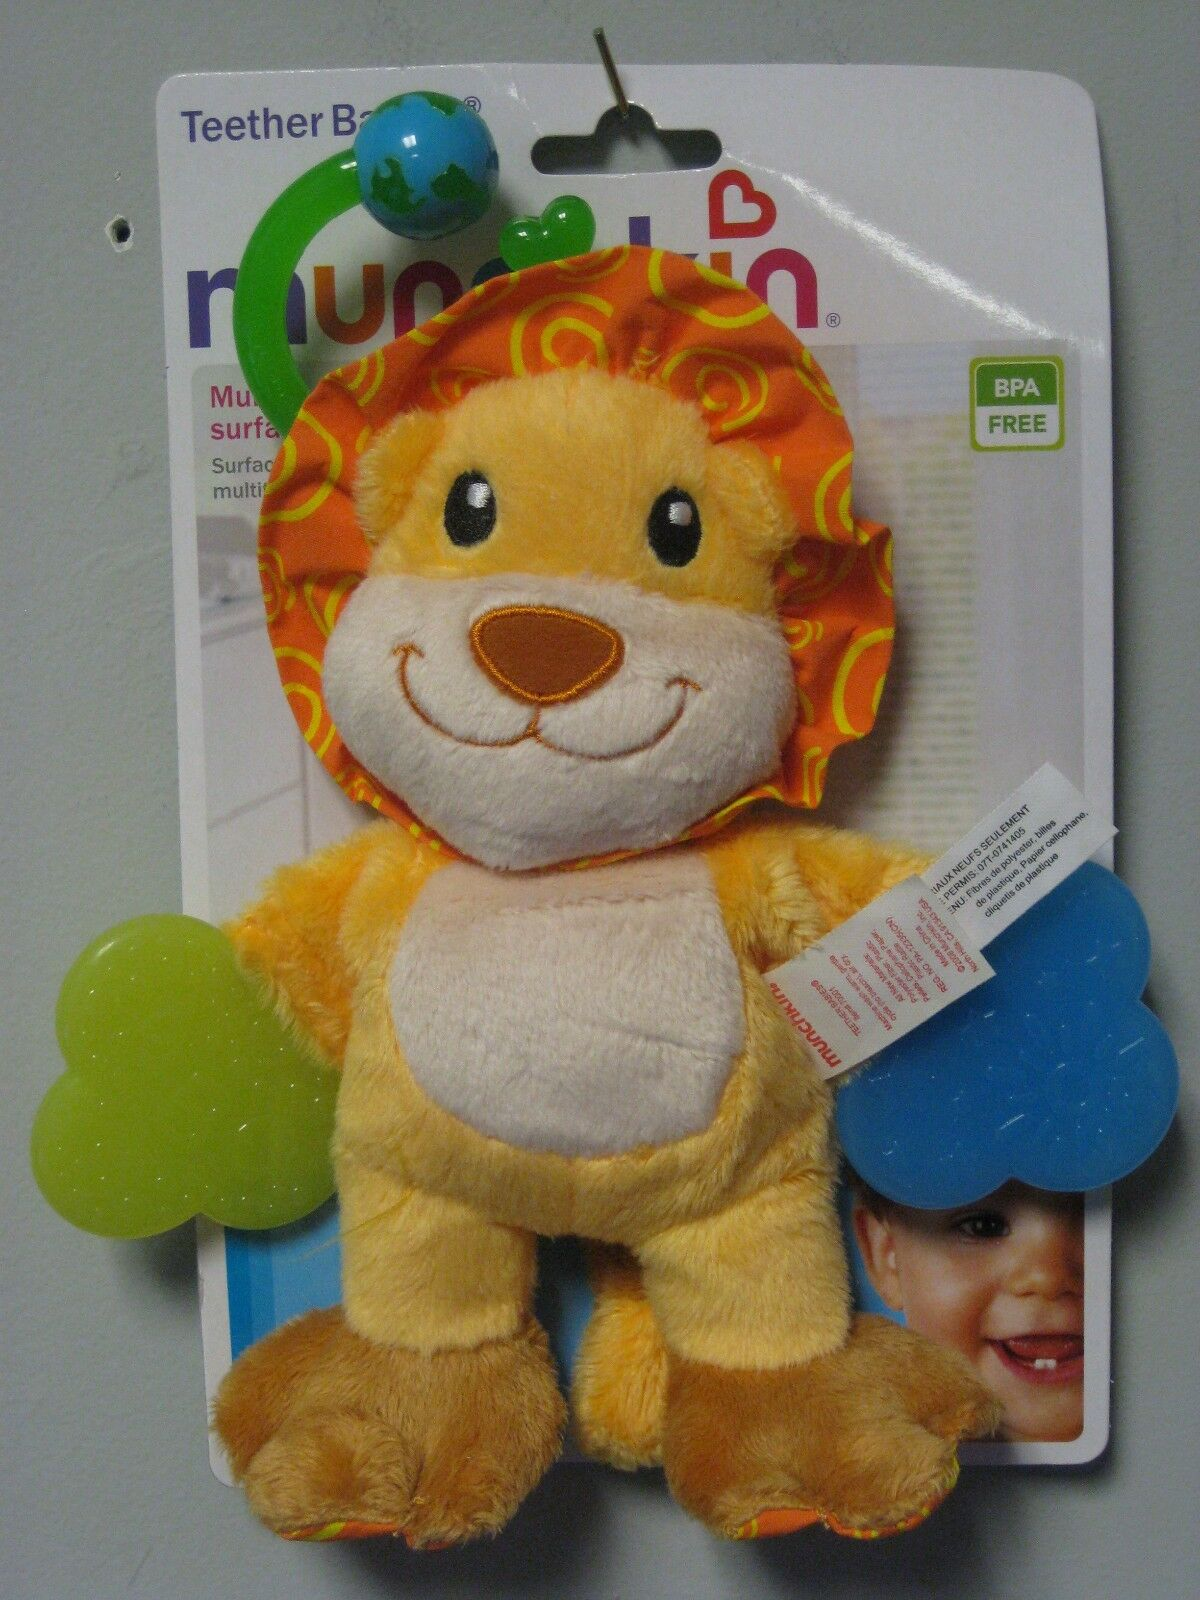 Munchkin Teether Babies Tiger Multi-textured Surfaces BABY SHOWER ...